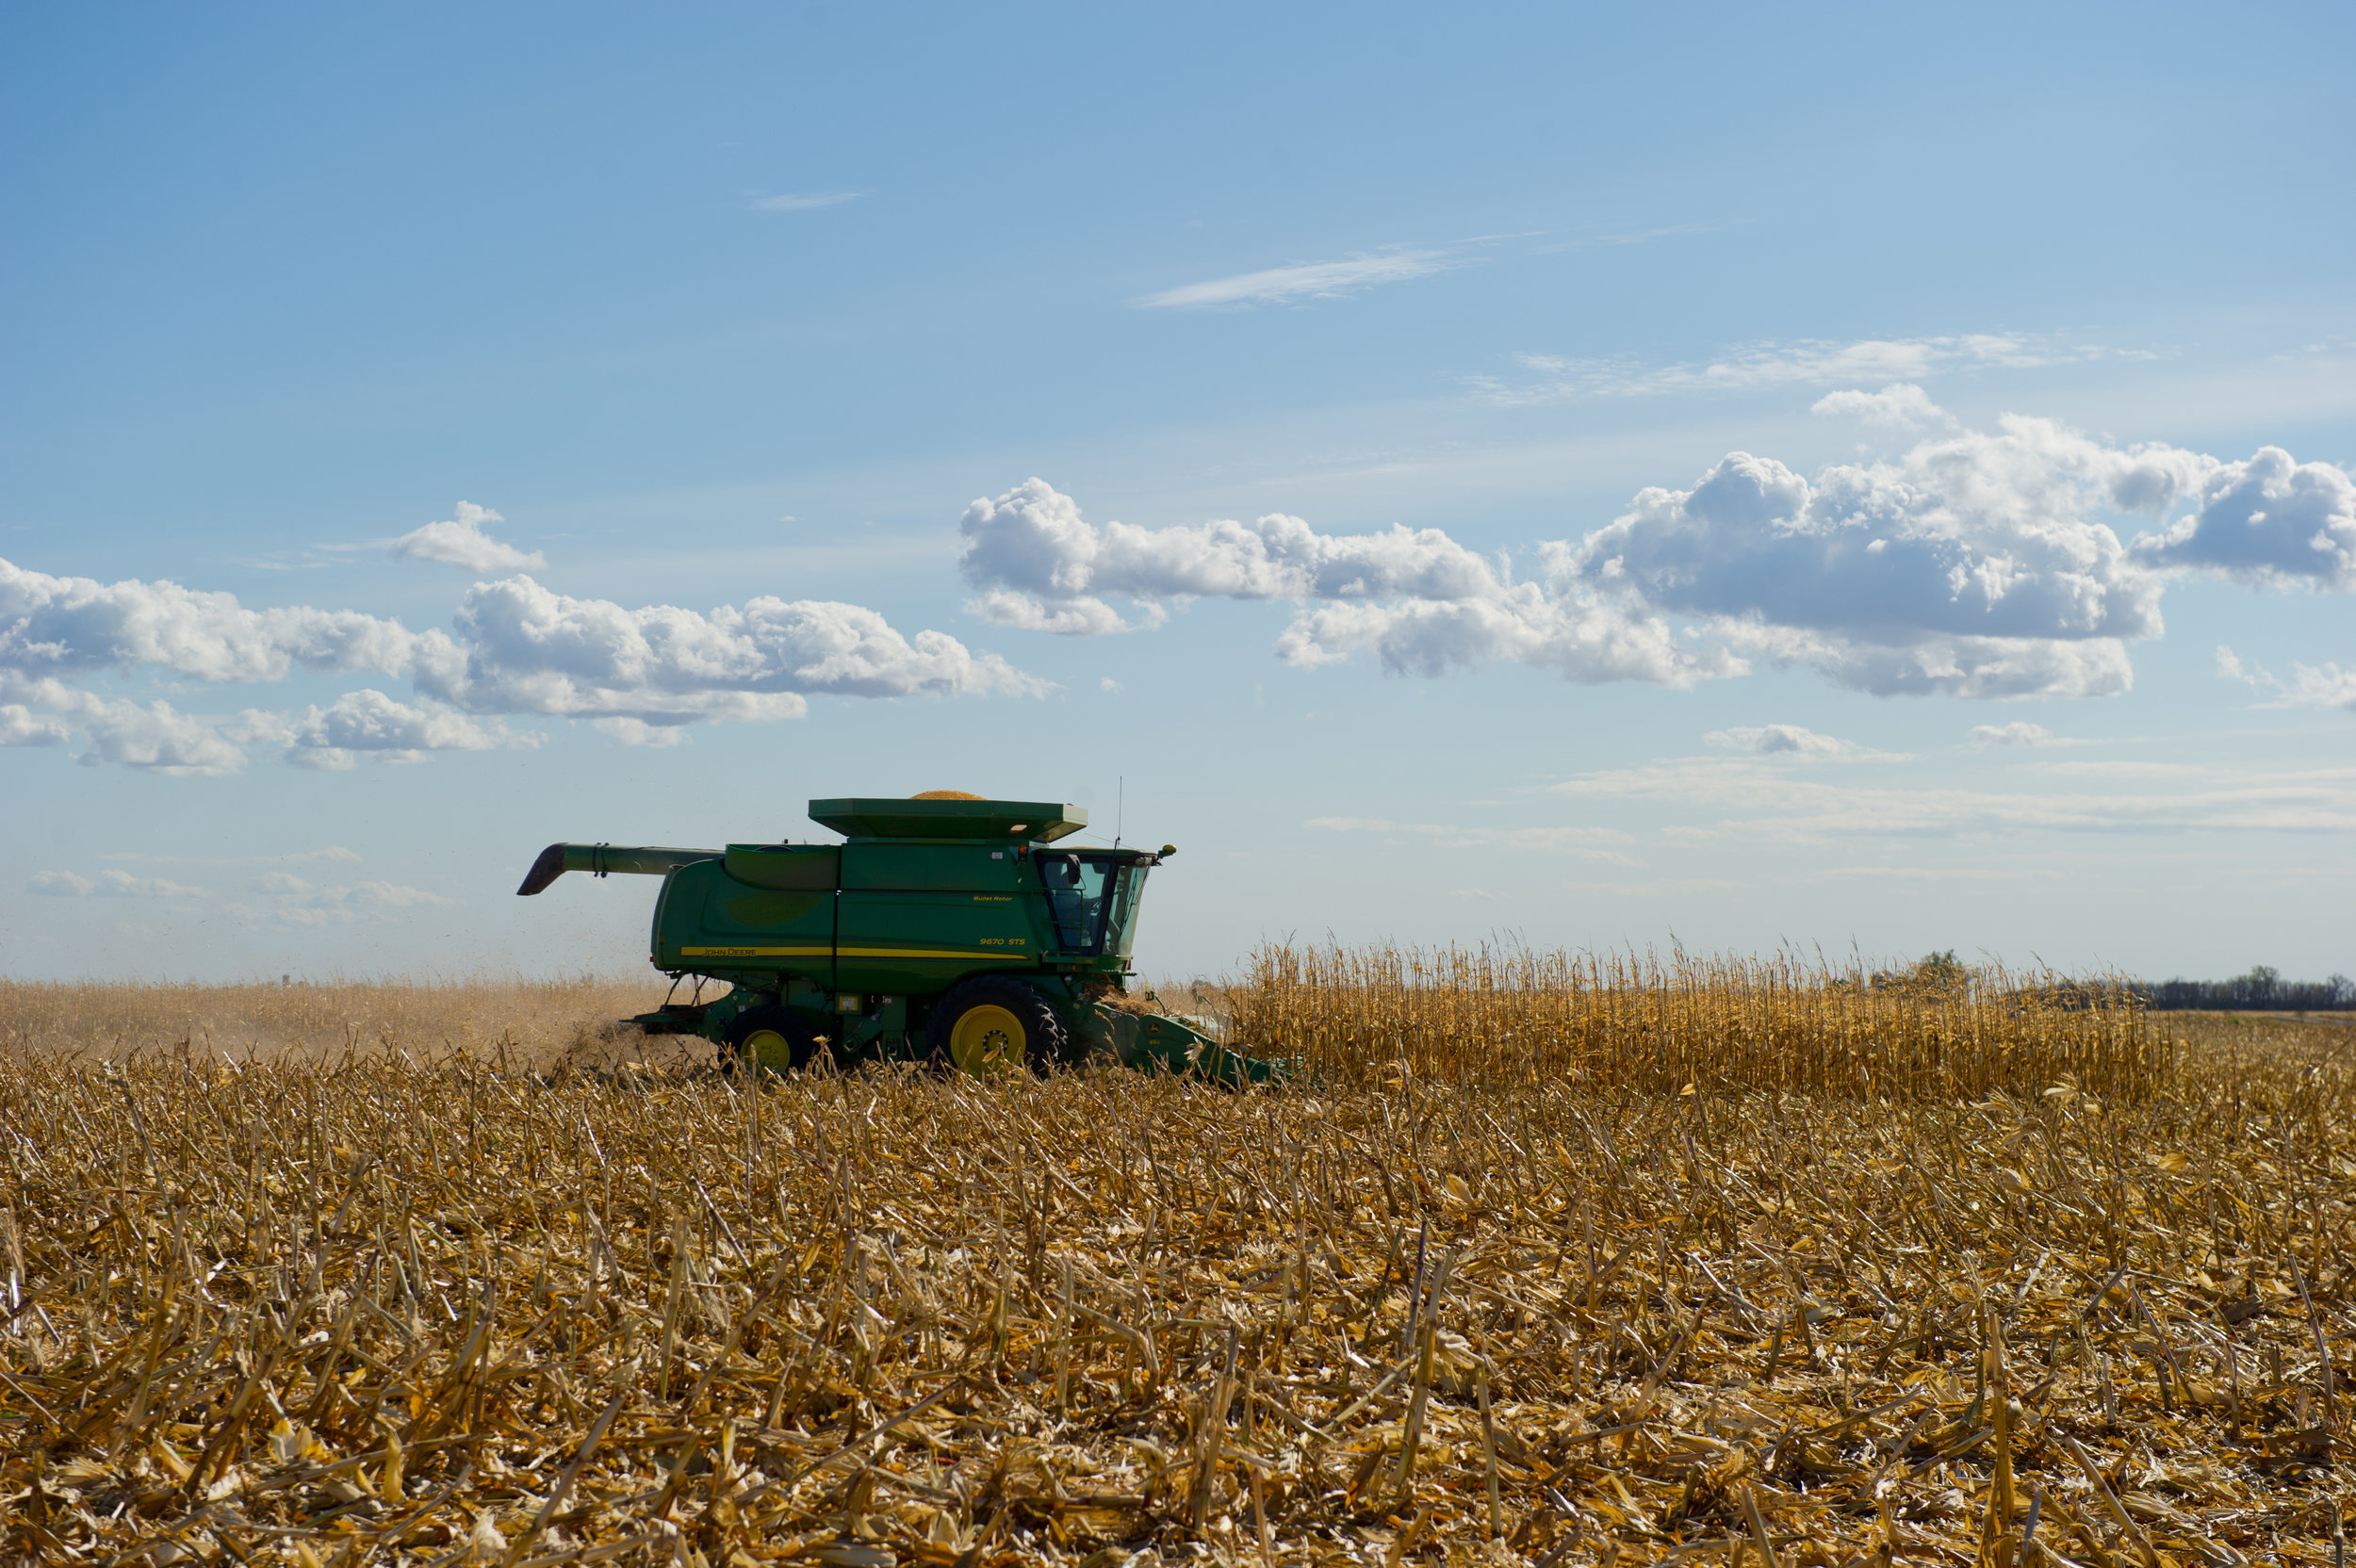 Image by United Soybean Board. Image shows combine harvesting corn.